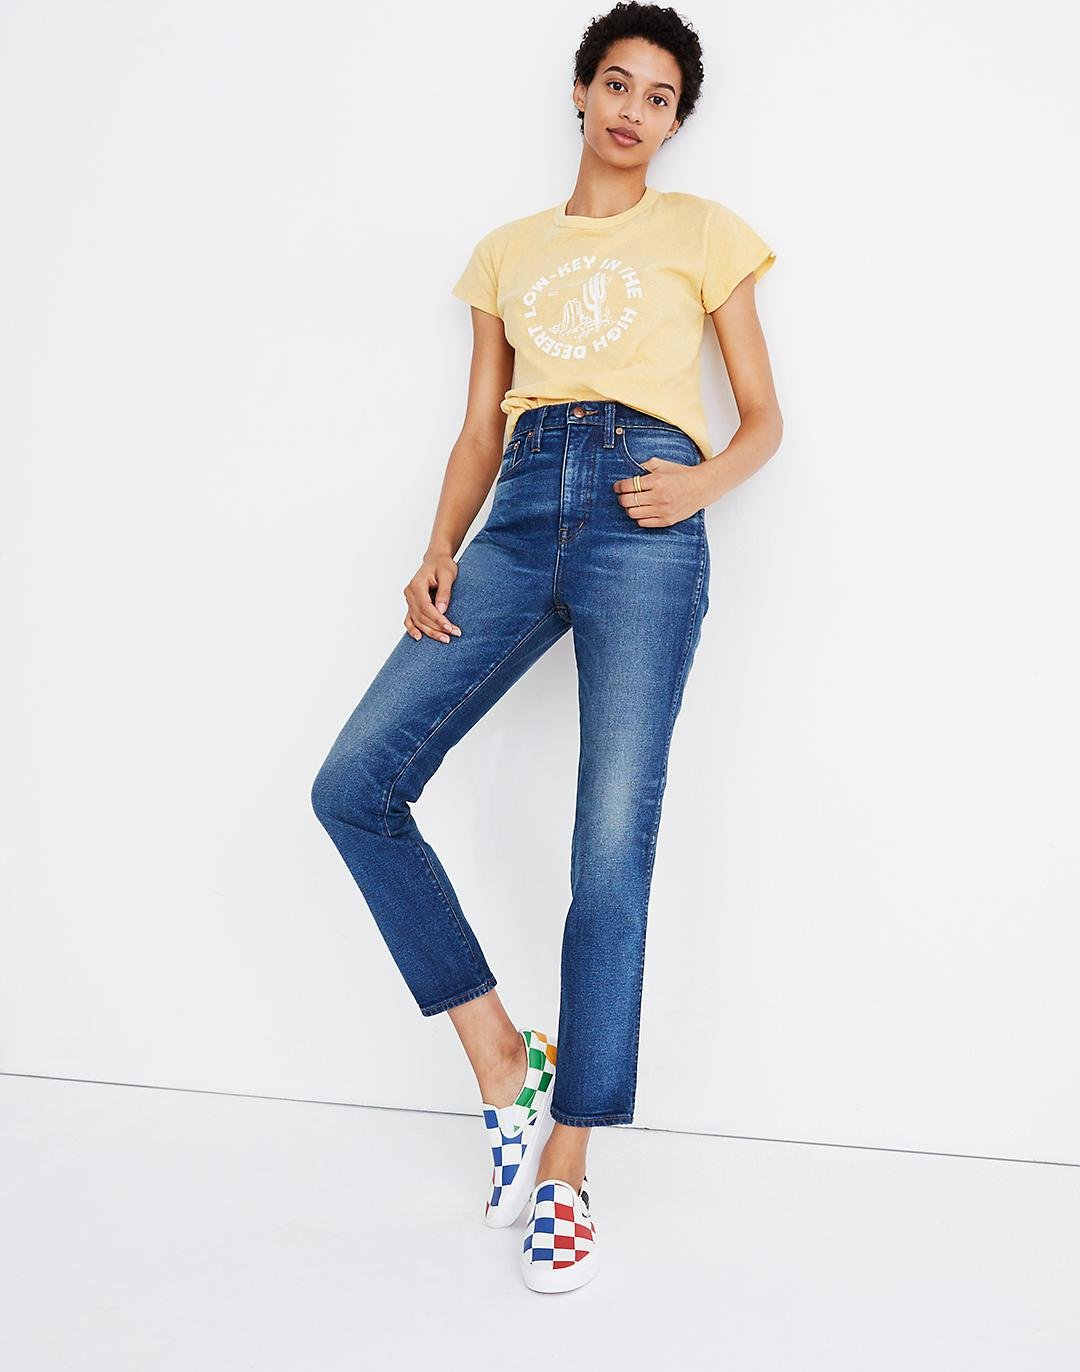 Rivet & Thread High-Rise Stovepipe Jeans in Kingman Wash